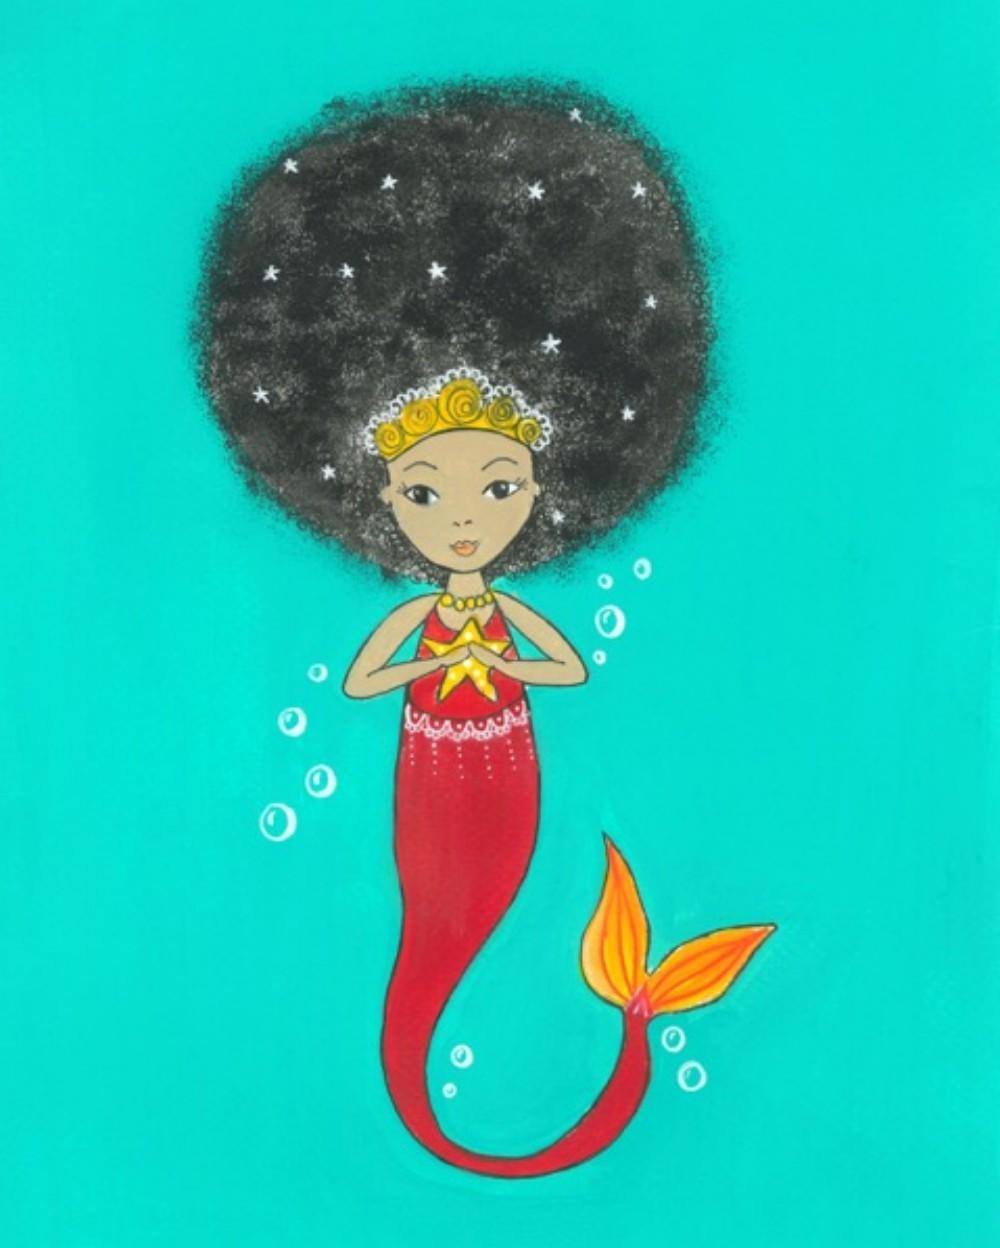 afro girl mermaid